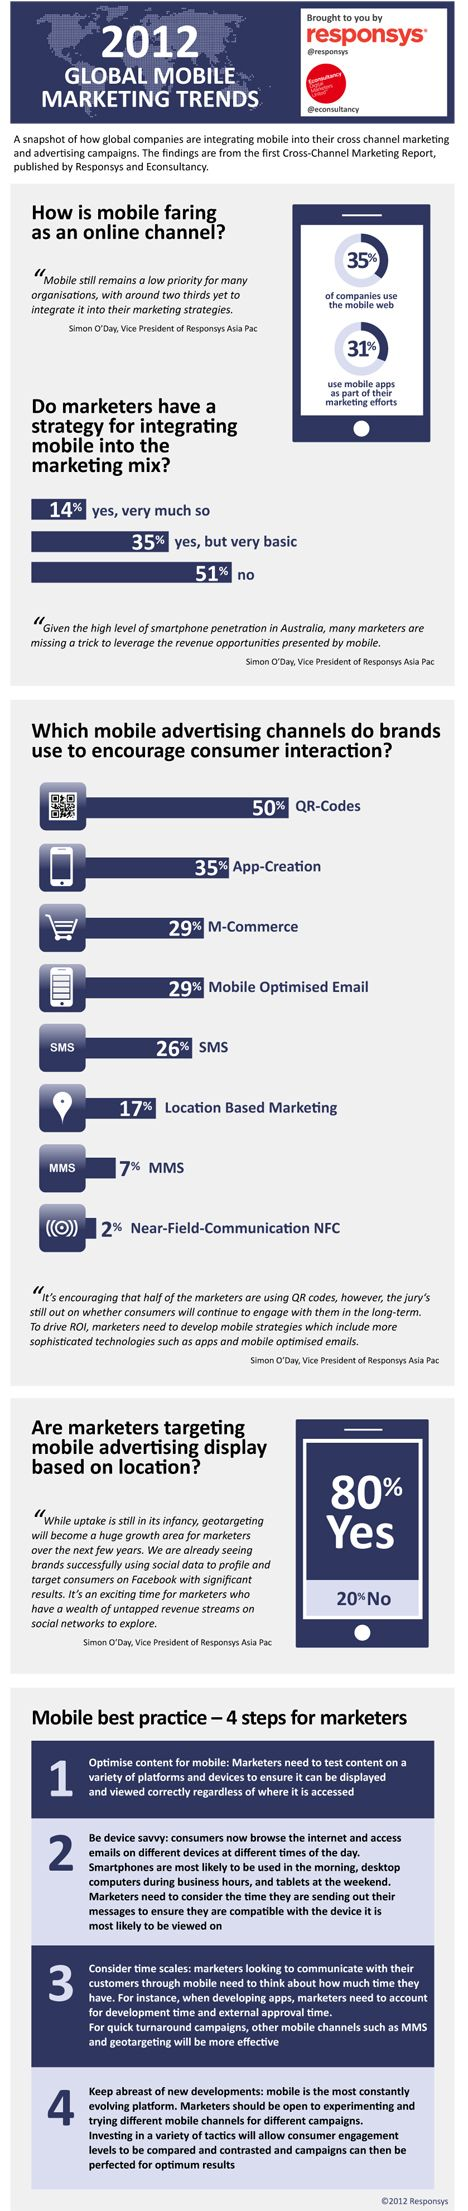 2012 Global Mobile Marketing Trends - http://wanelo.com/p/3878283/just-out-how-to-make-money-with-cell-phones-and-mobile-marketing